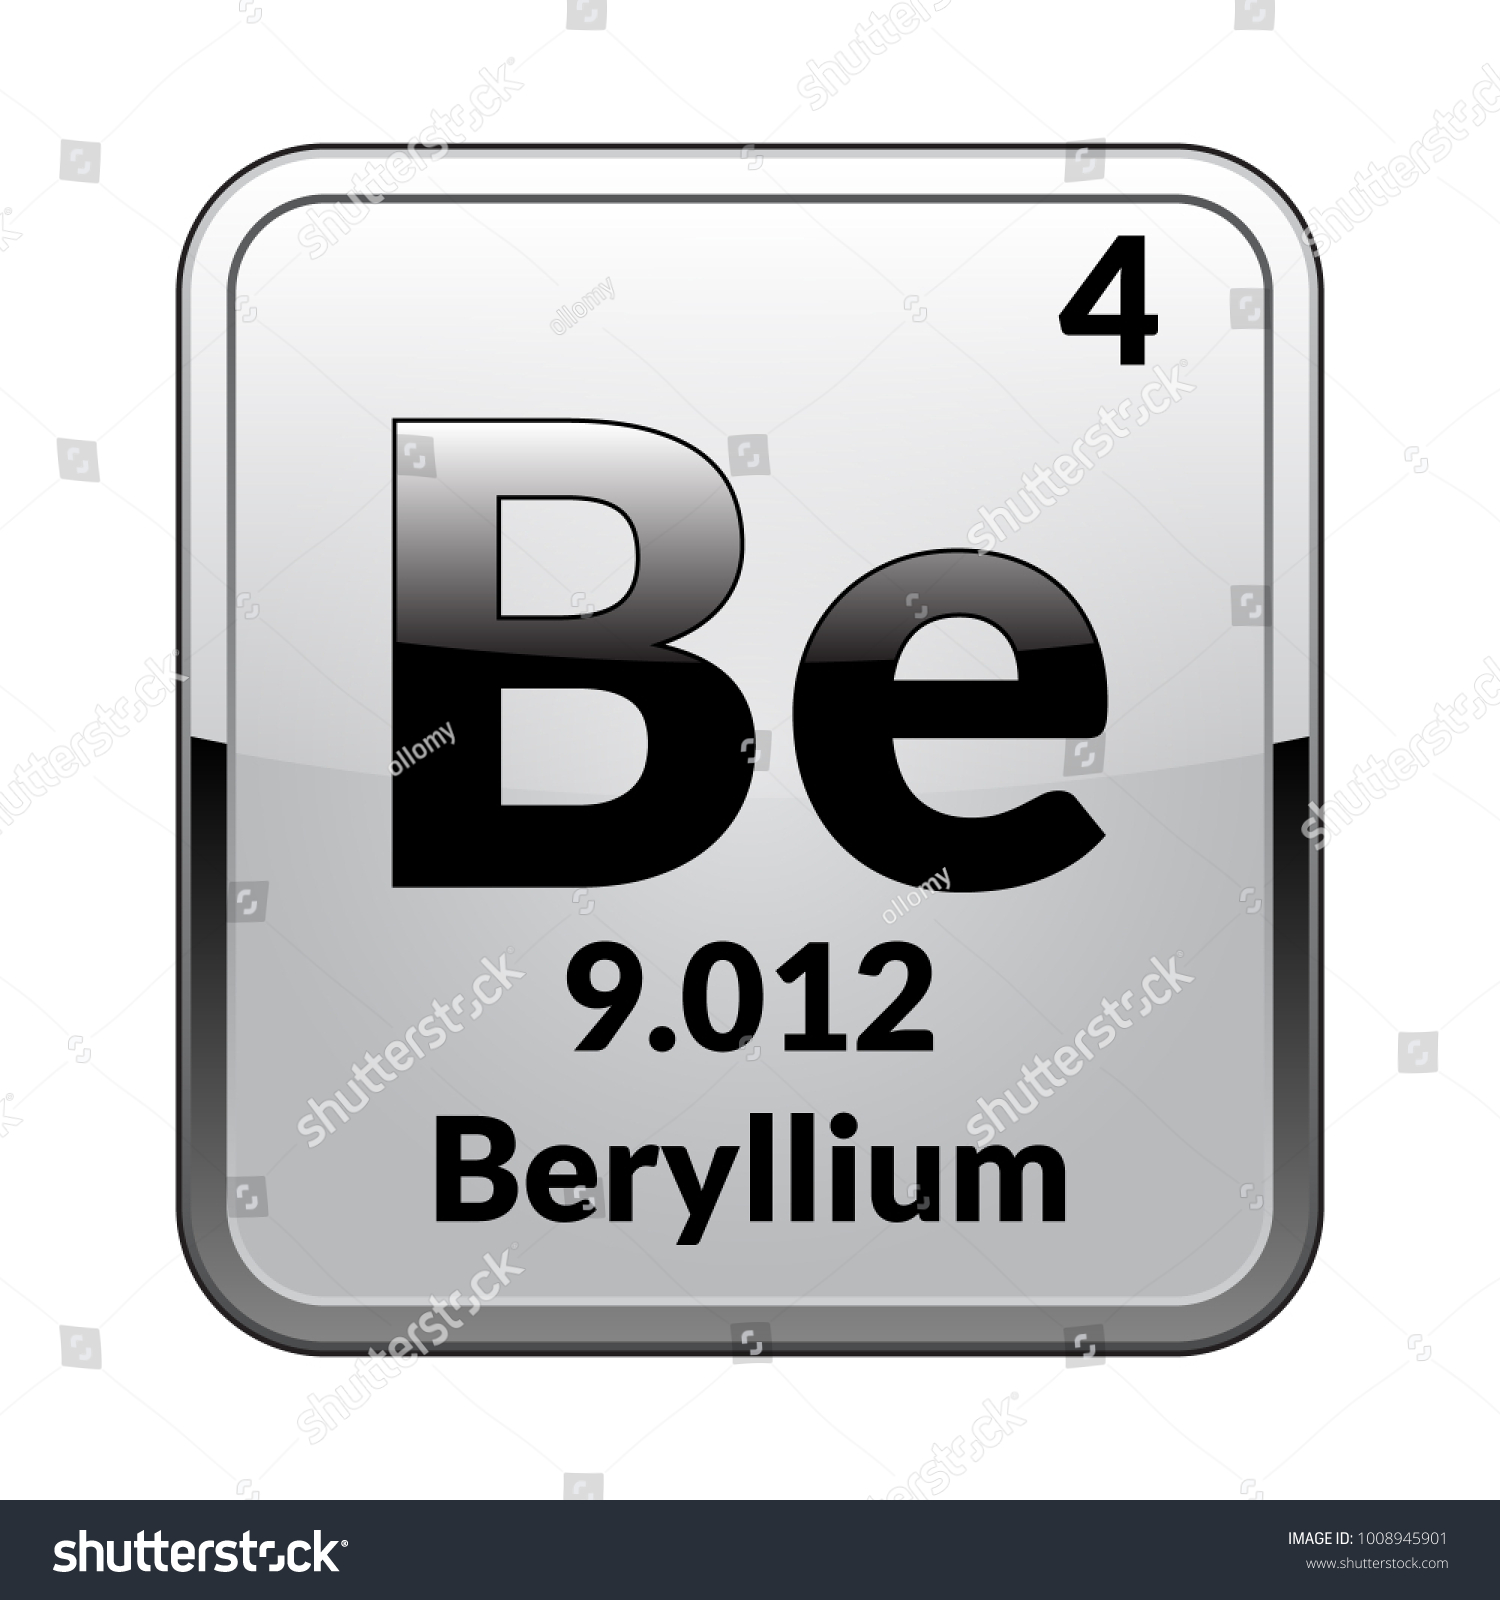 Beryllium symbolchemical element periodic table on stock vector beryllium symbolemical element of the periodic table on a glossy white background in a biocorpaavc Images